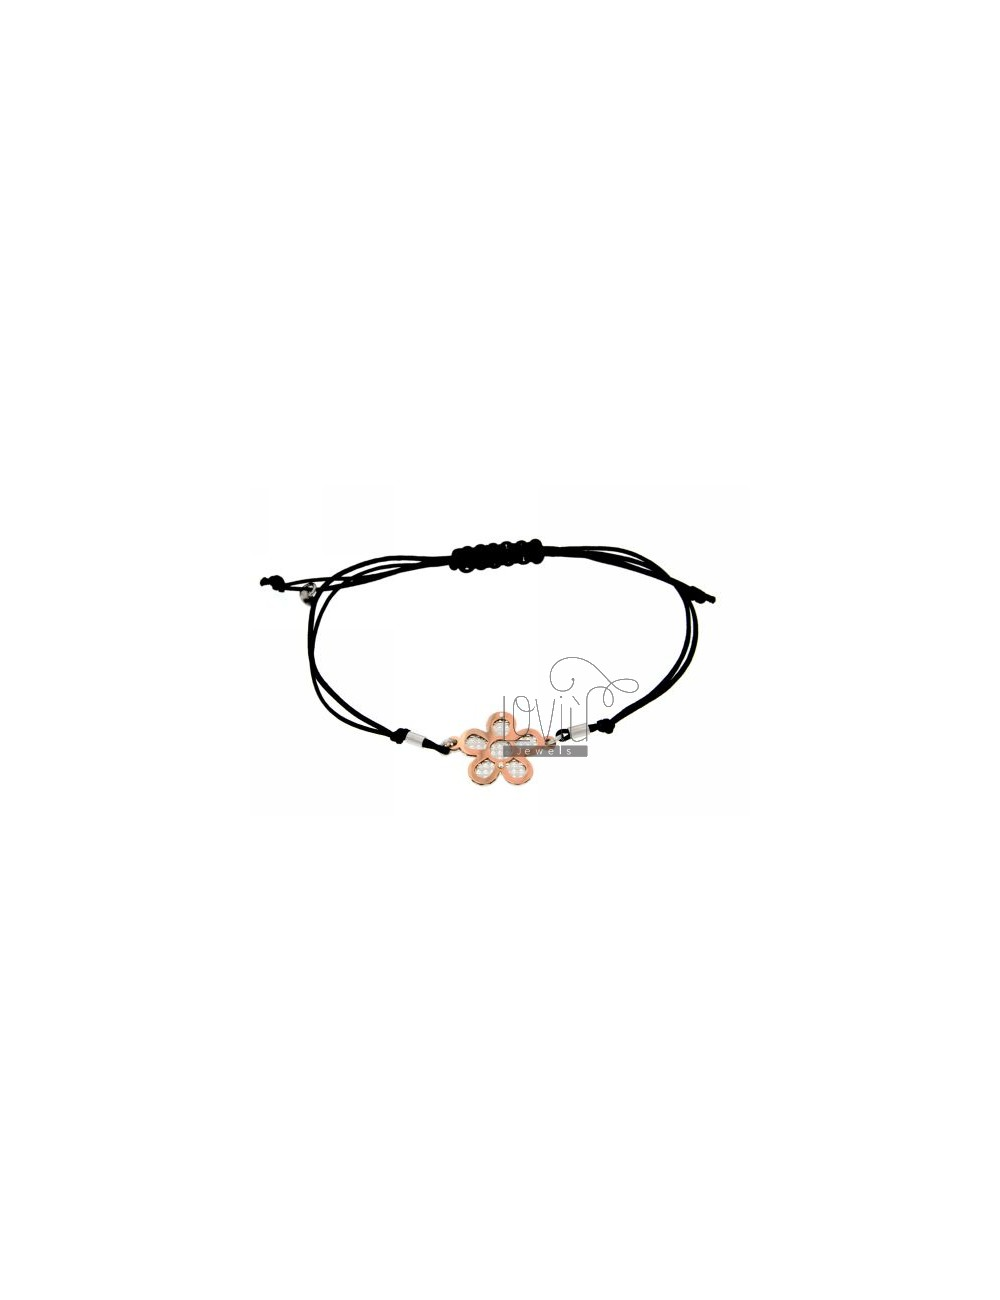 CORD NECKLACE AND BRACELET WITH FLOWER SHAPED INTERIOR WITH DIAMOND ROSE GOLD PLATED SILVER 925